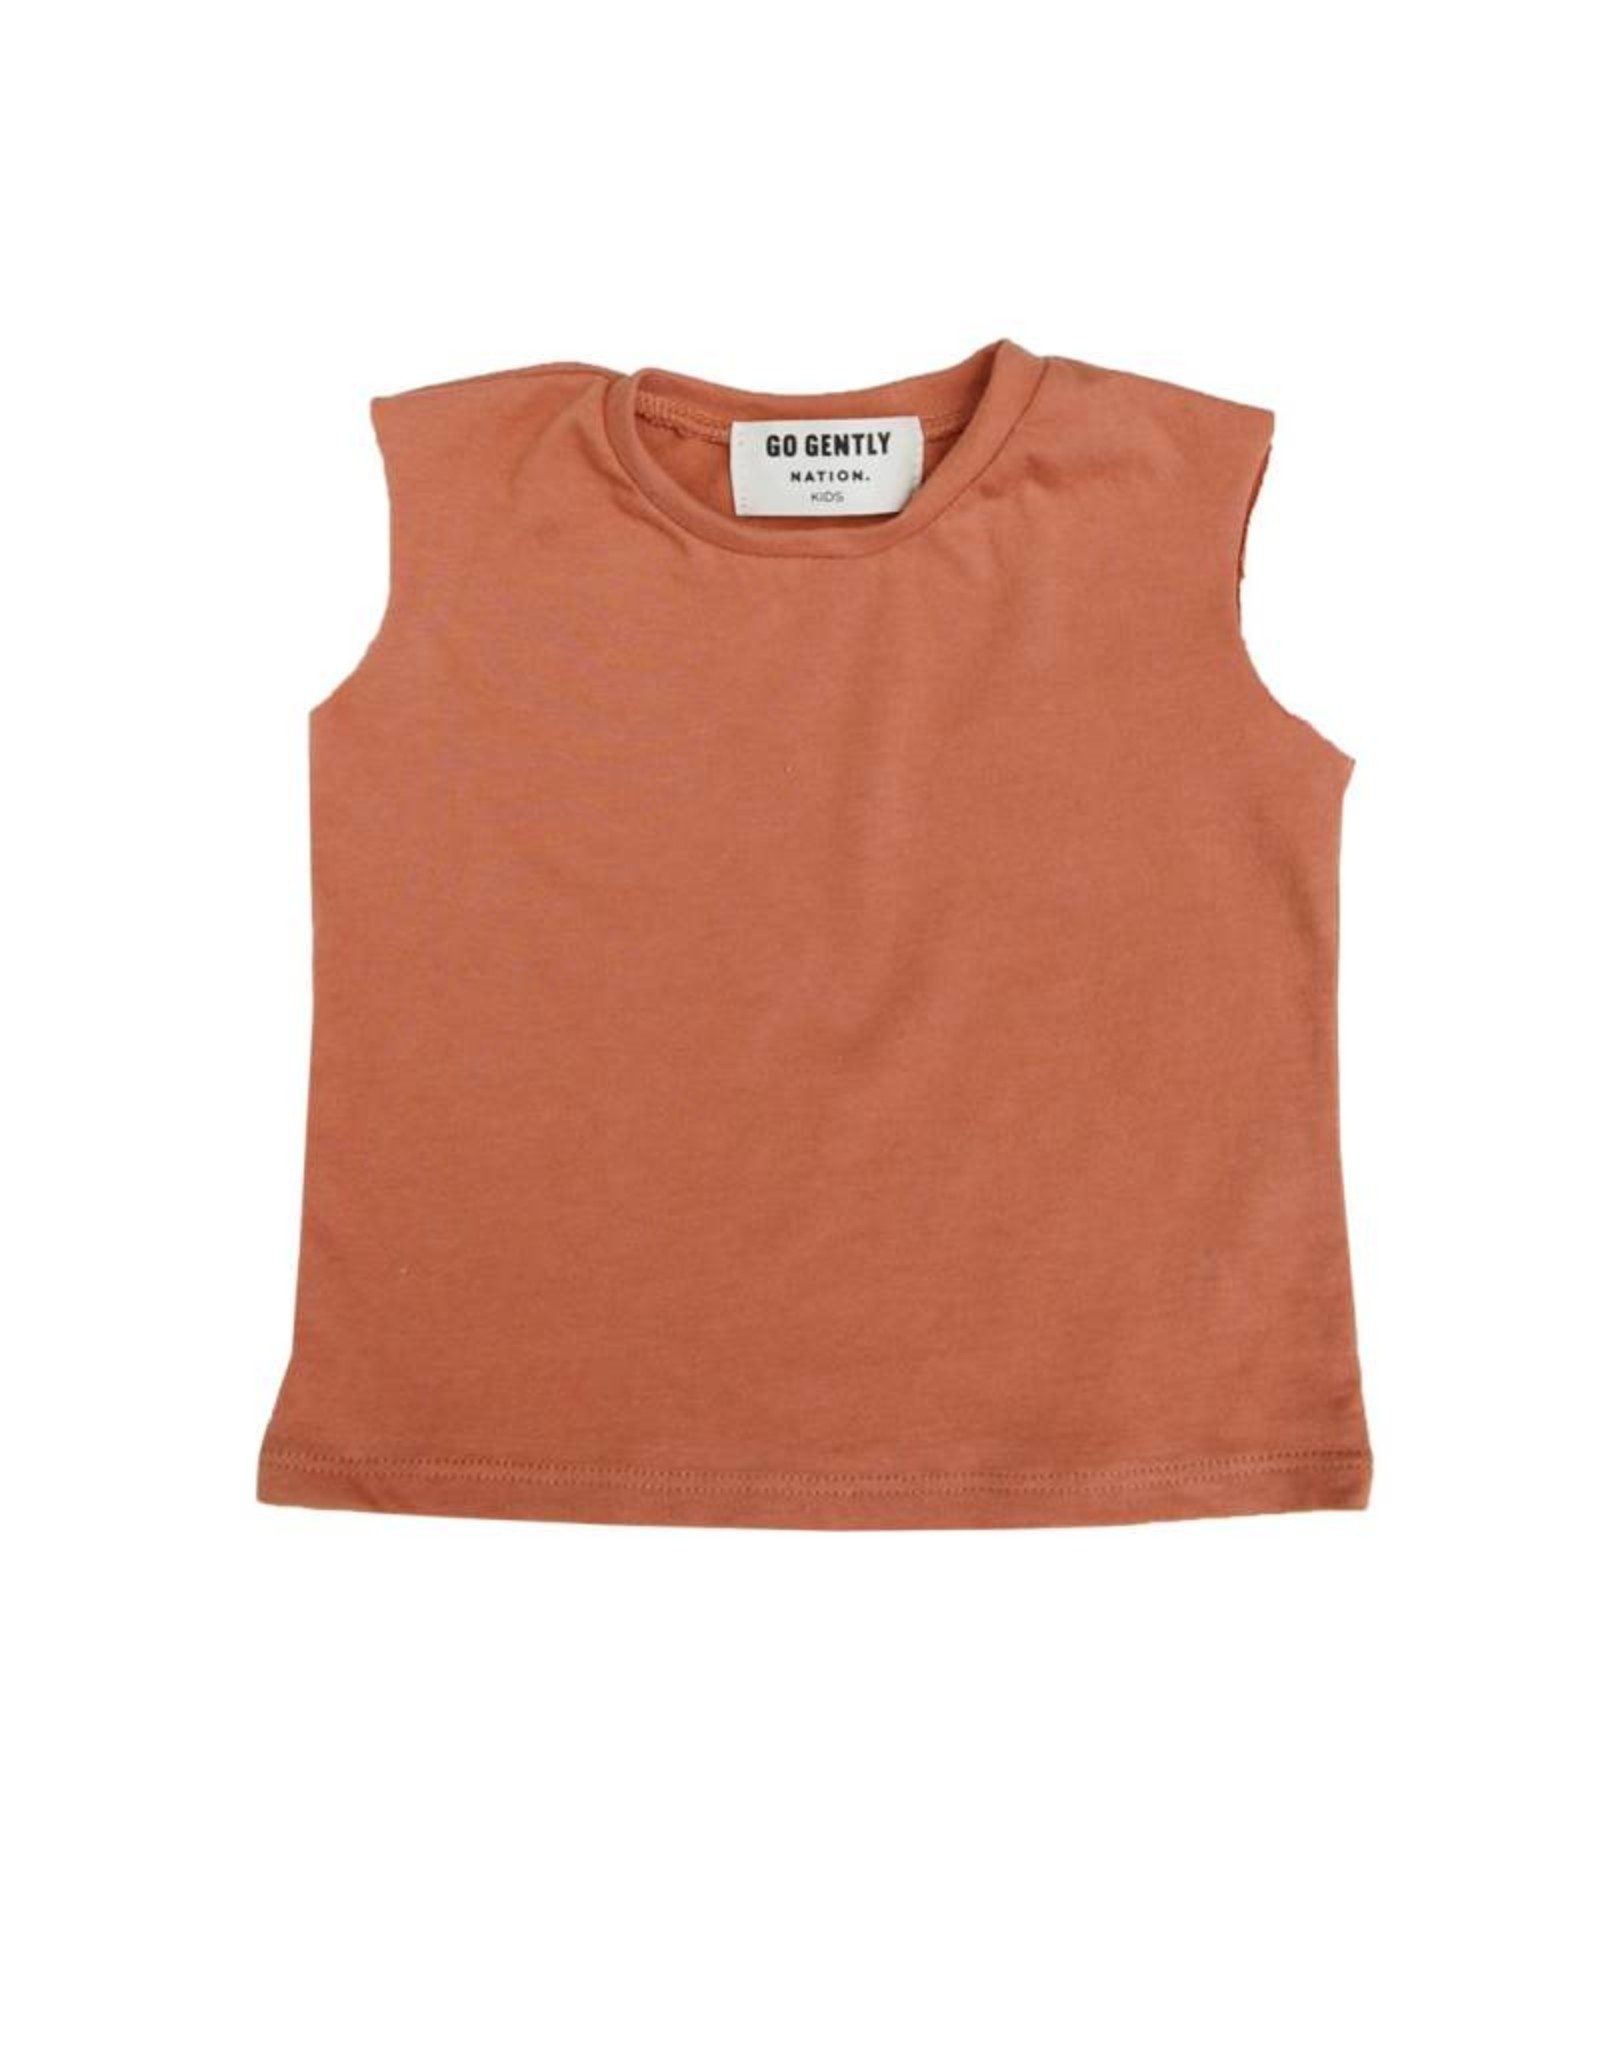 Go Gently Nation Muscle Tee